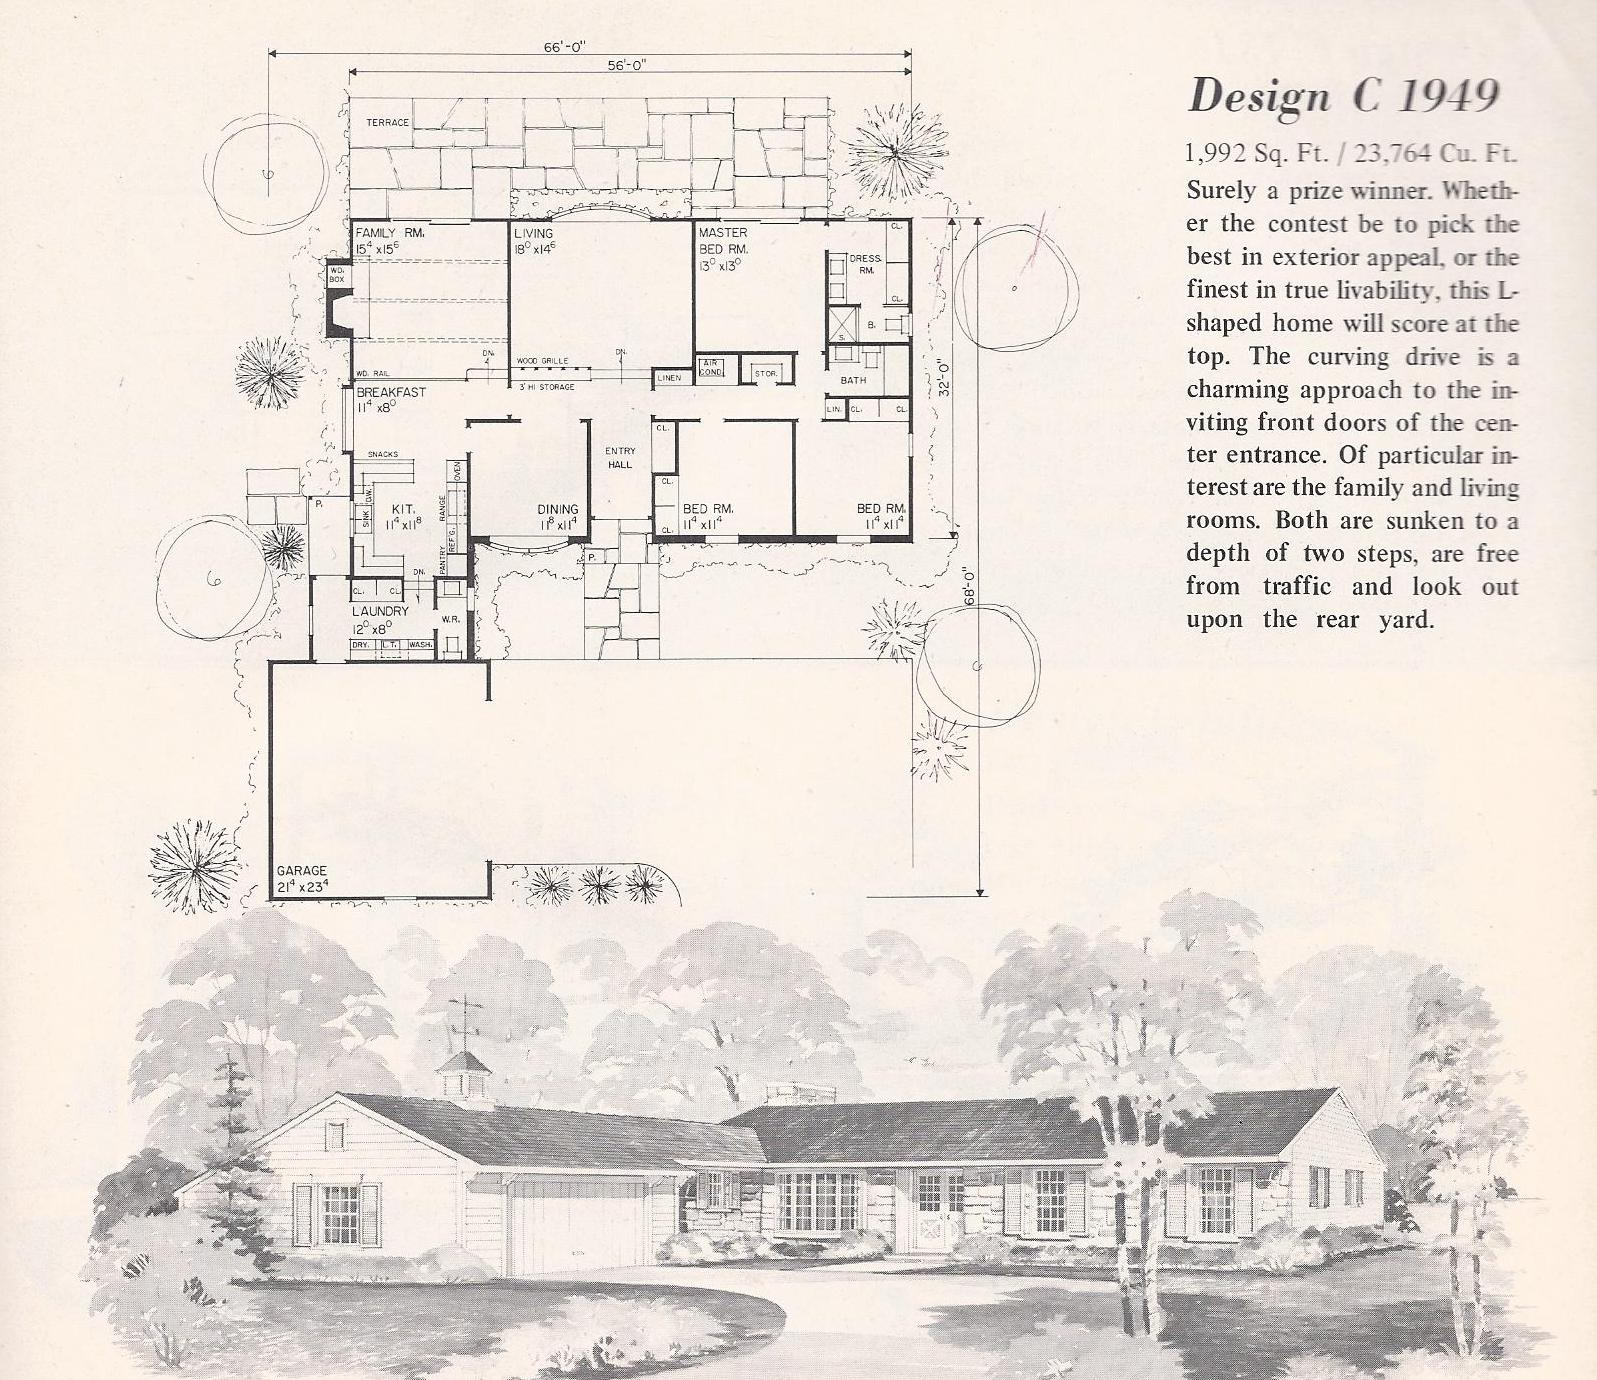 Vintage house plans 1949 antique alter ego for Classic tudor house plans